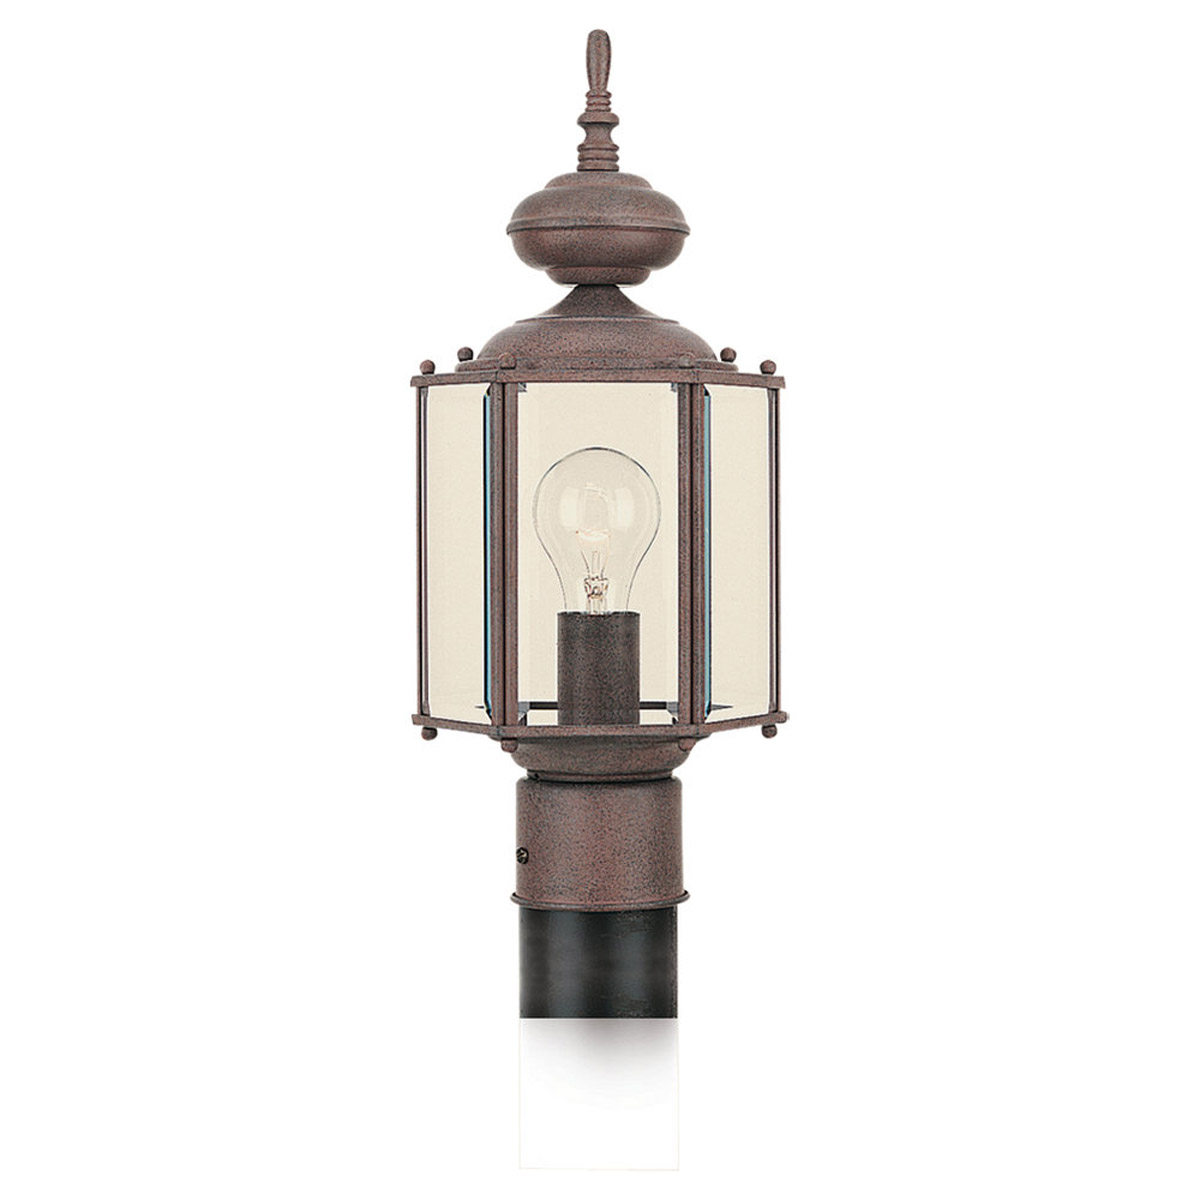 Sea Gull Lighting Classico 1 Light Outdoor Post Lantern in Sienna 8209-26